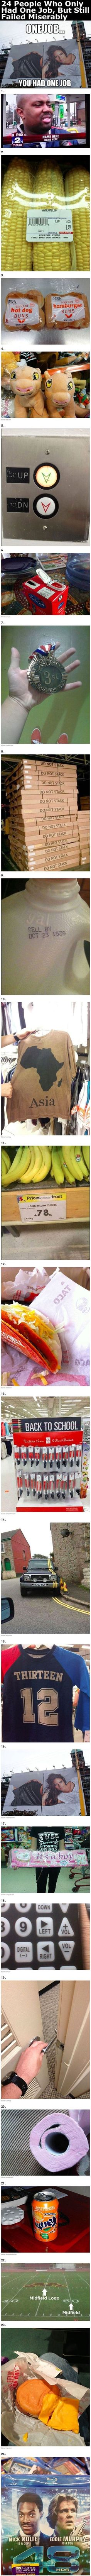 24 People Who Only Had One Job, But Still Failed Miserably funny memes lol hilarious humor funny pictures wtf funny images humor, funny quotes Wtf Funny, Funny Fails, Funny Cute, Funny Humor, Pranks Hilarious, Funny Stuff, Funny Cartoons, Ocd Humor, Funny Drunk